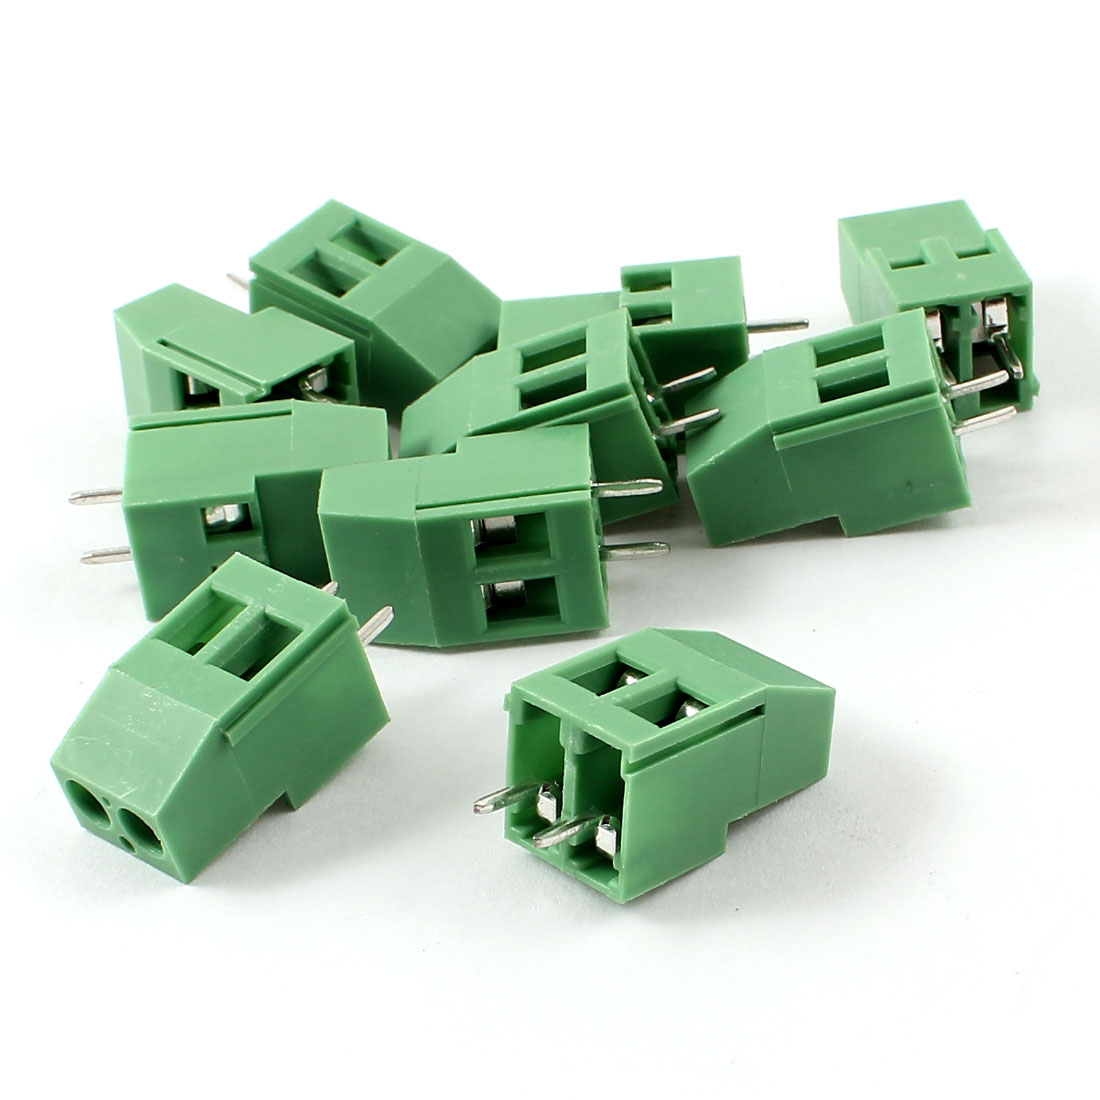 10pcs Straight 5mm Pitch PCB Board Screw Terminal Blocks Green